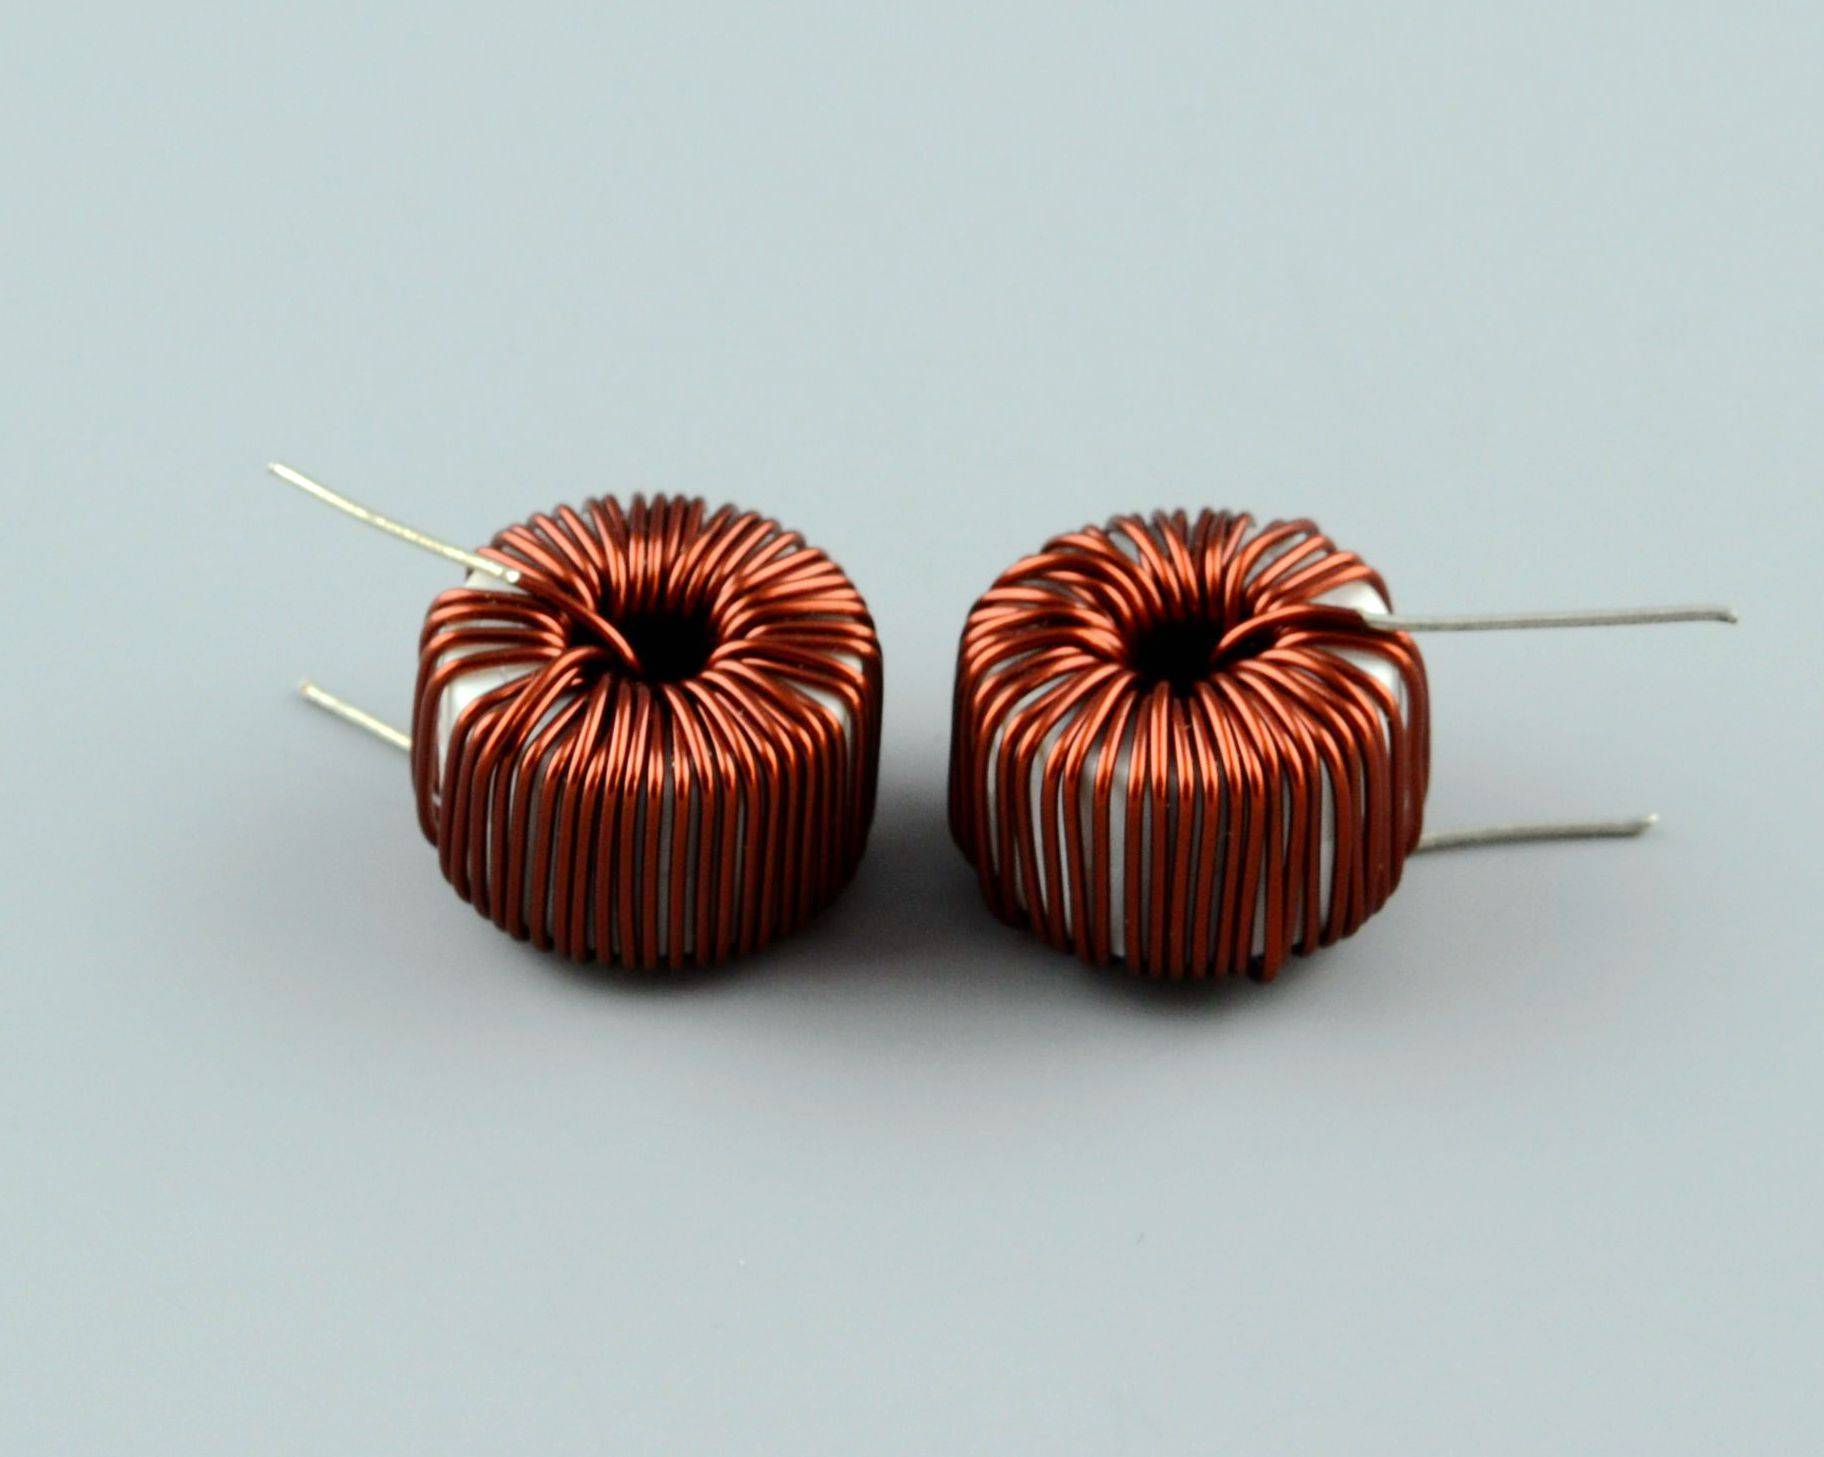 Differential mode inductor cores